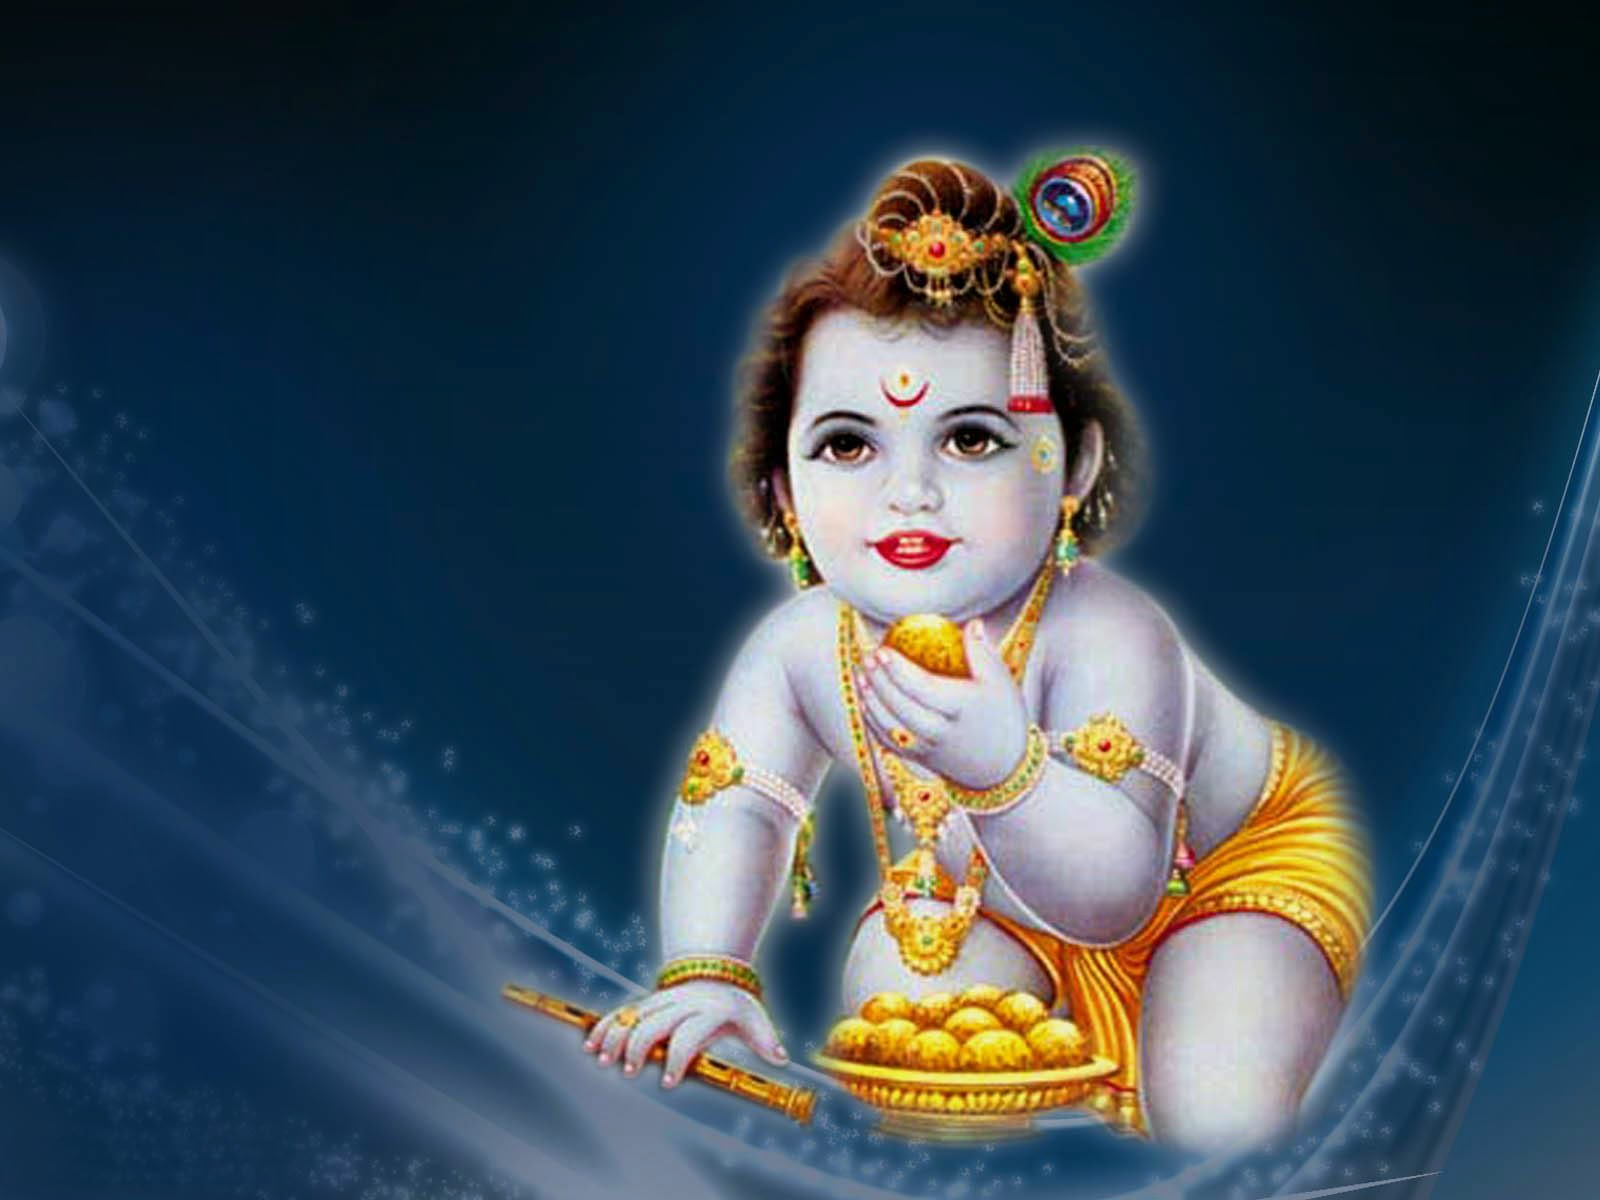 Wallpaper of krishna for mobile - Pictures Free Loveable God Images Lord Krishna Mobile Wallpapers